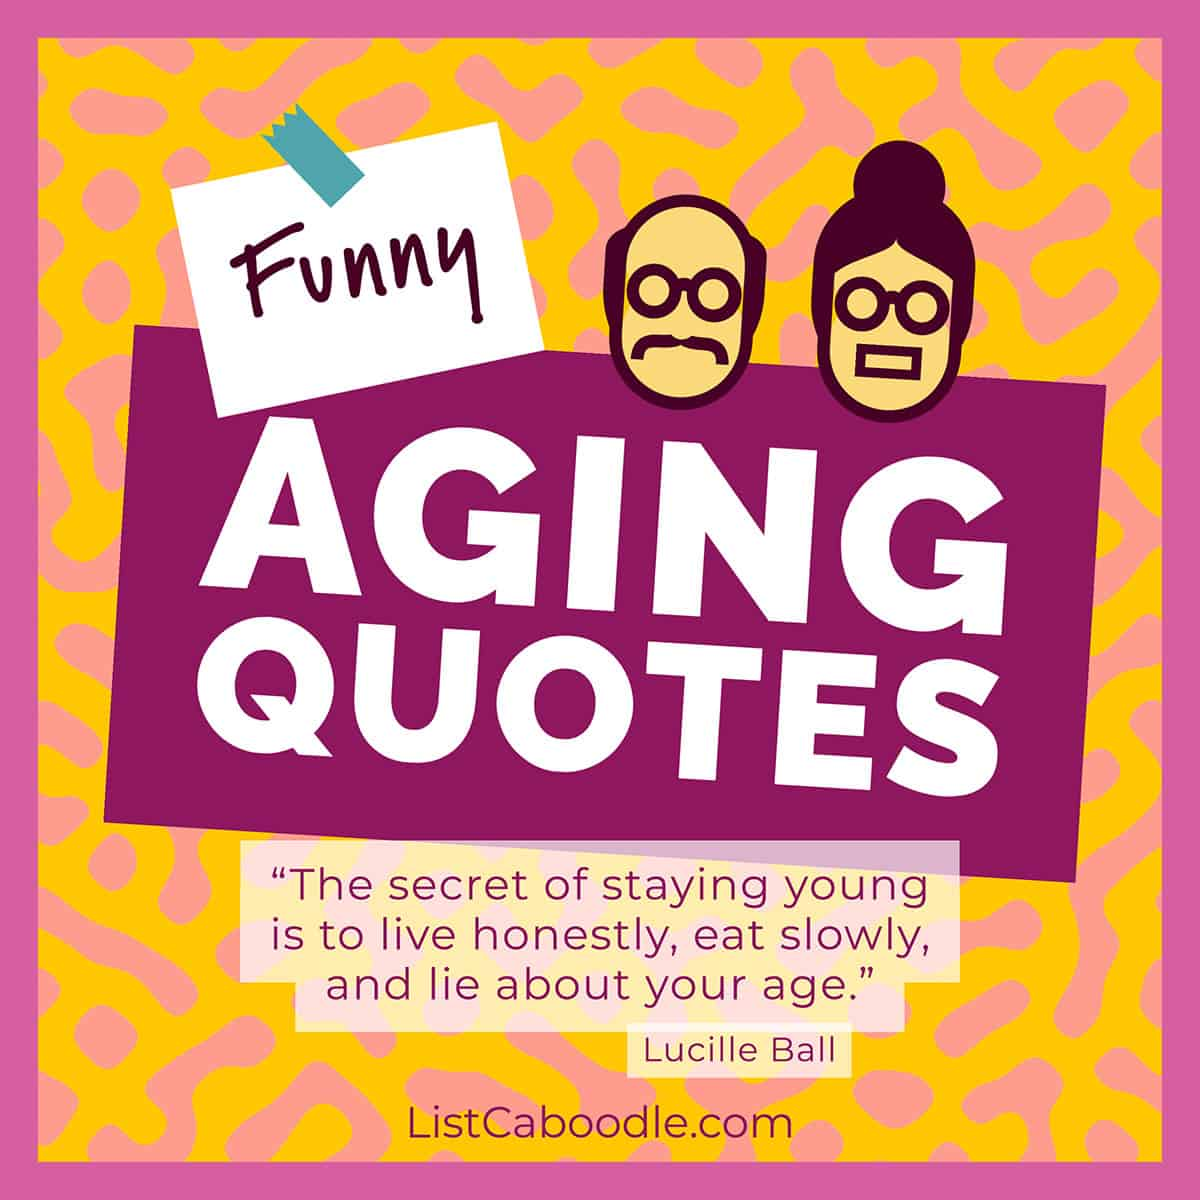 Funny aging quotes image